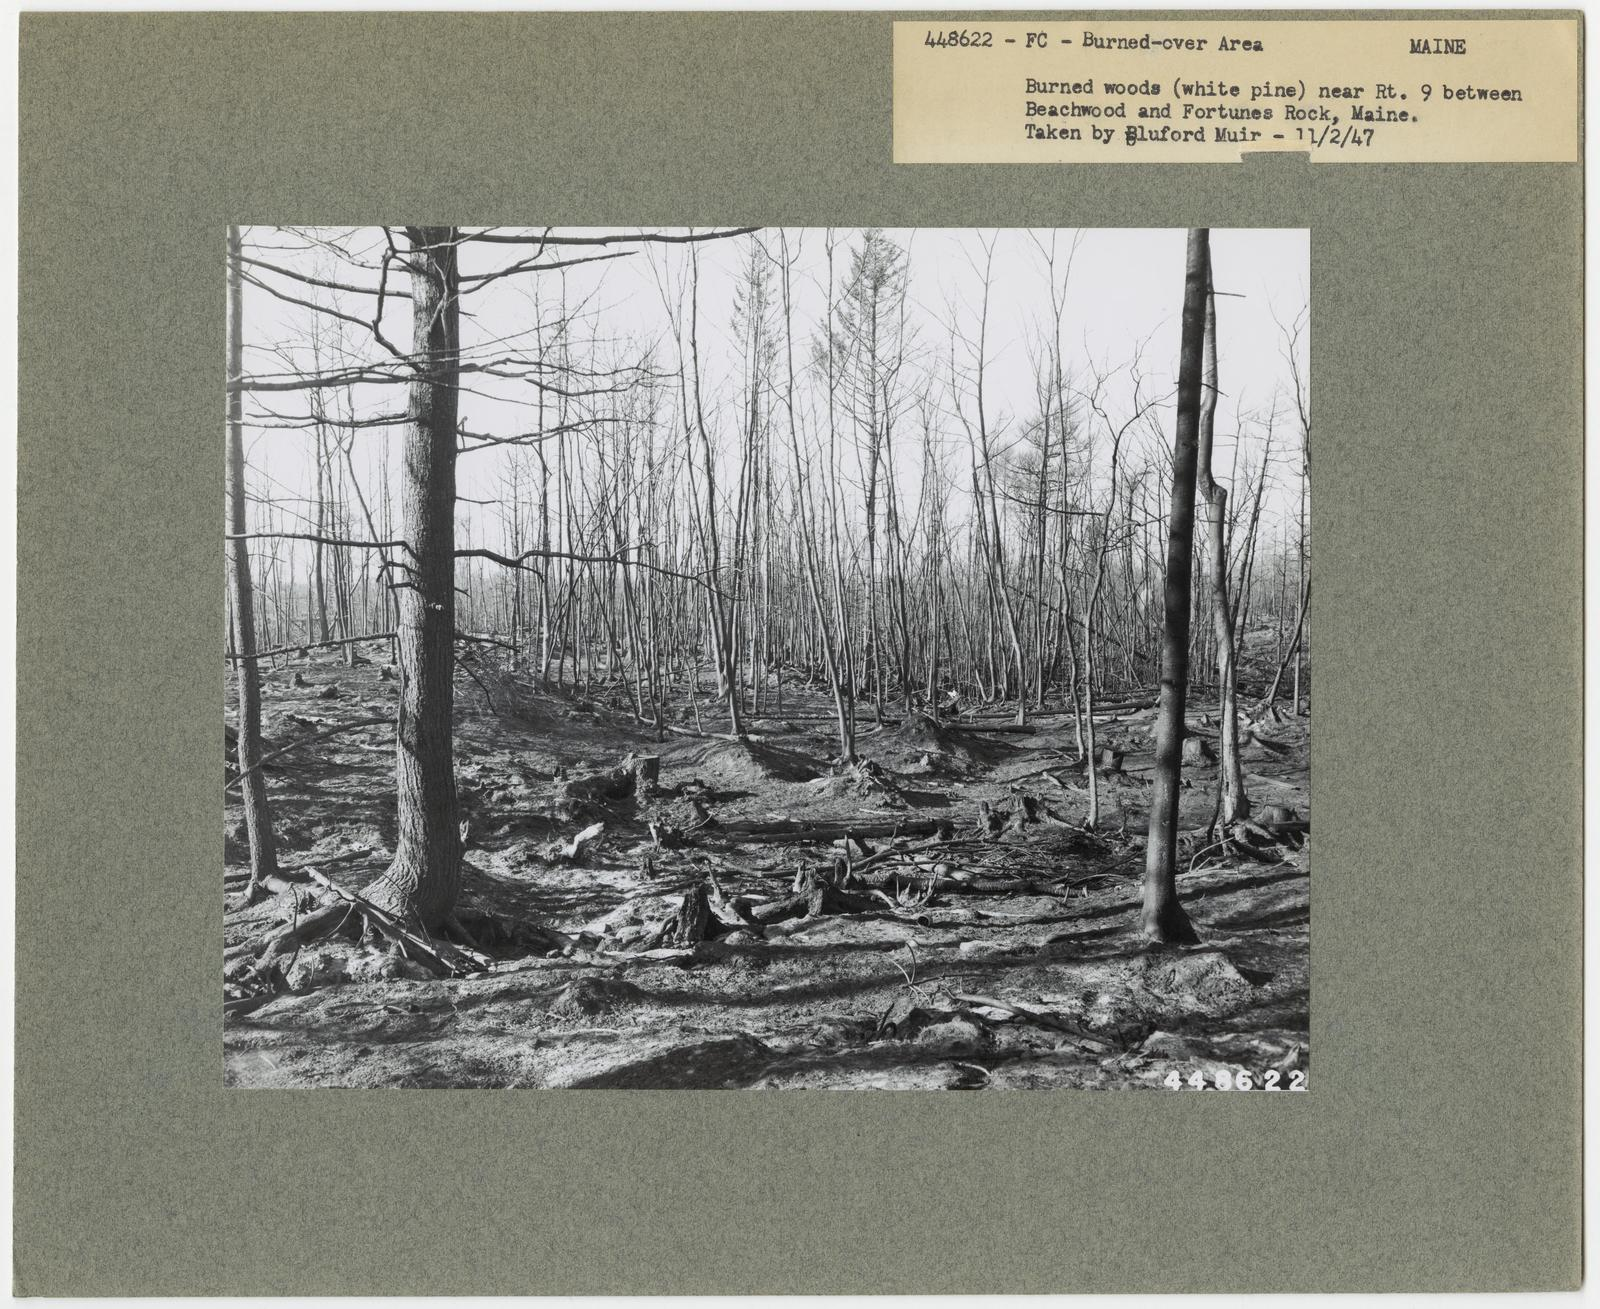 Burned -Over Areas - Maine